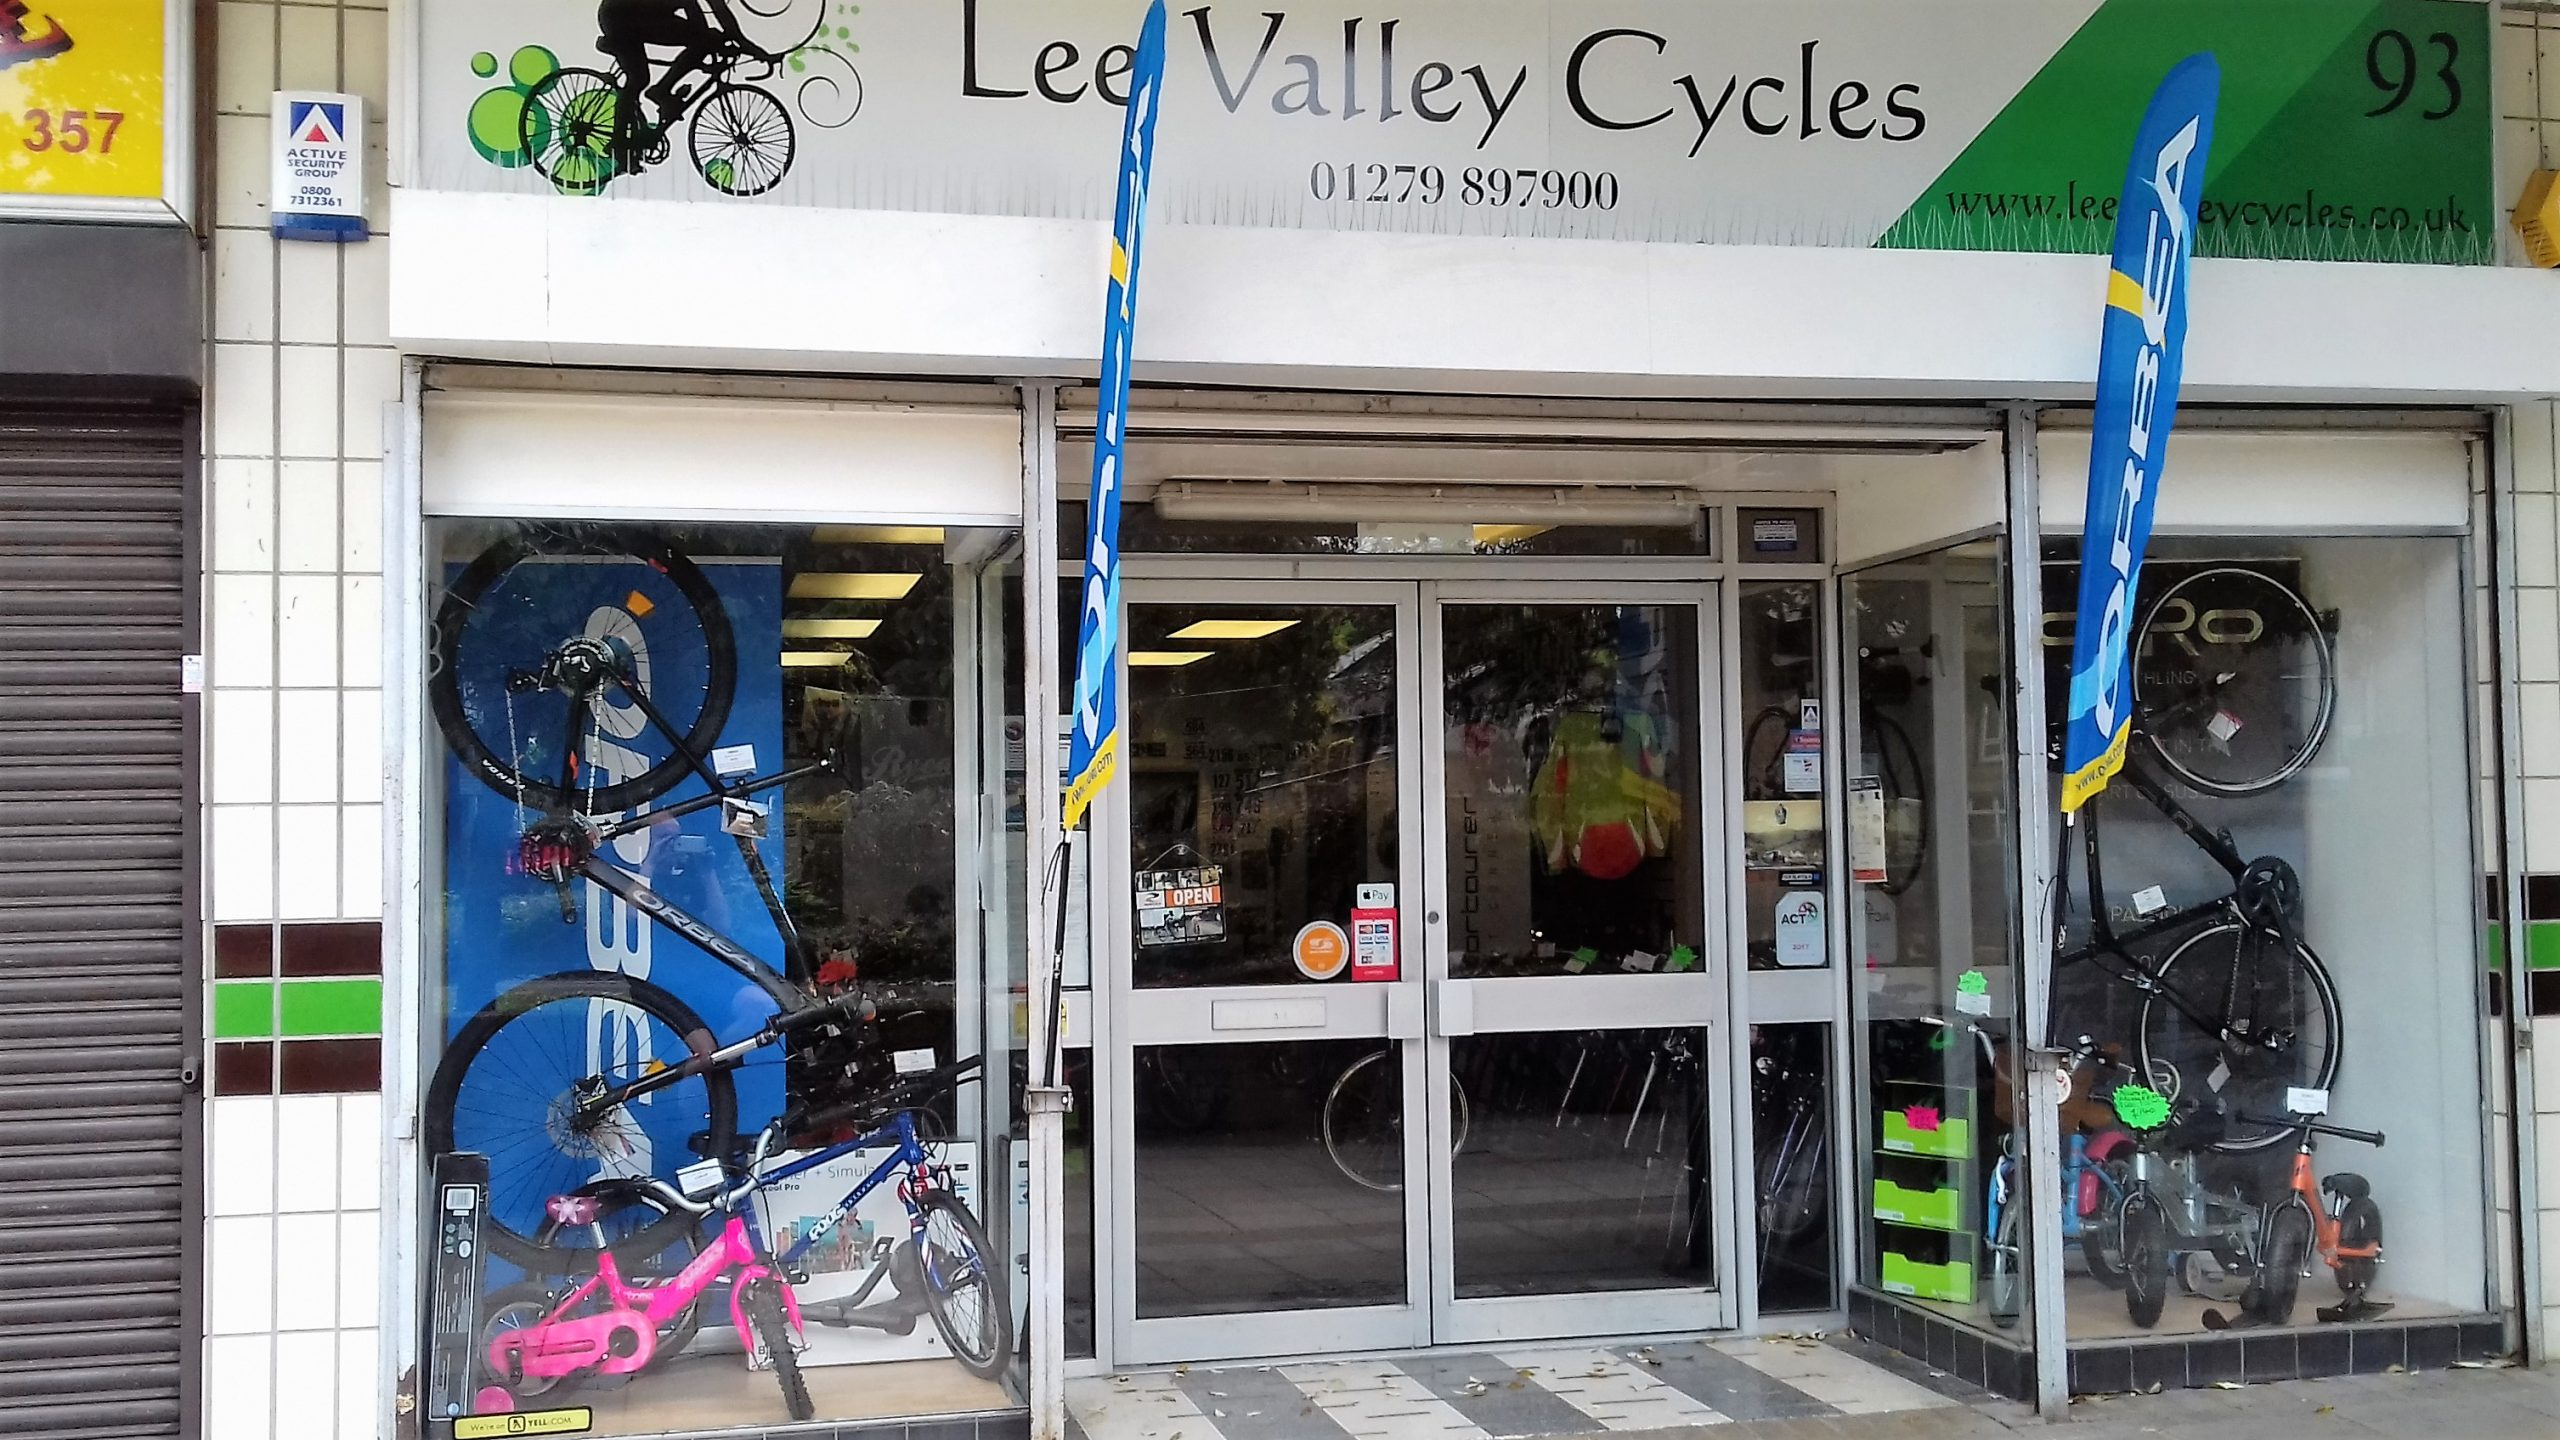 Lee Valley Cycles